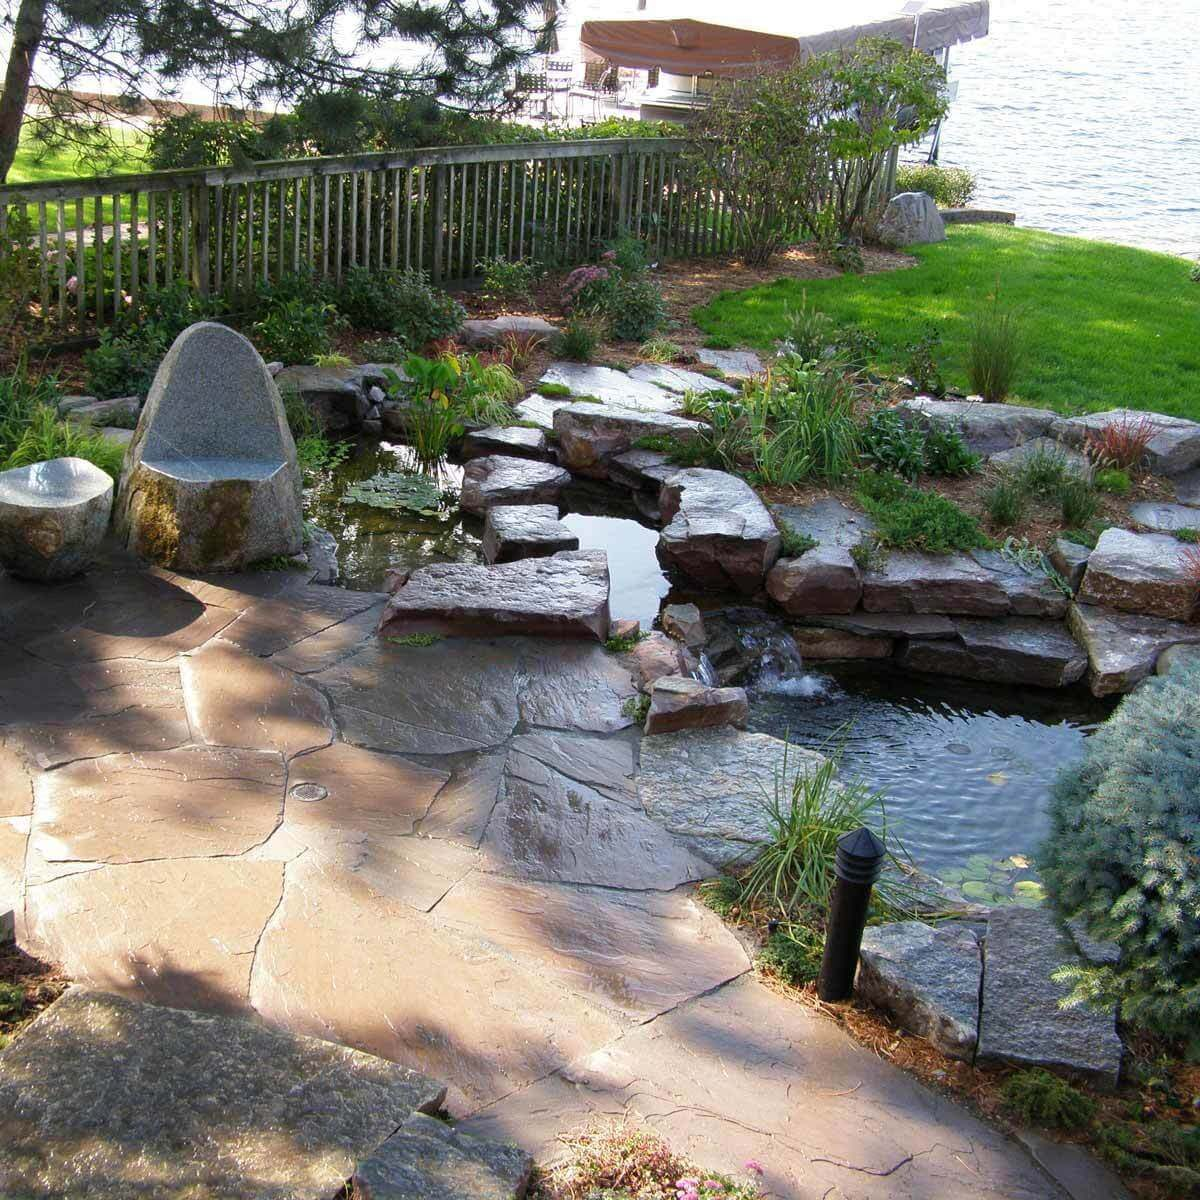 Stone Patio with Pond